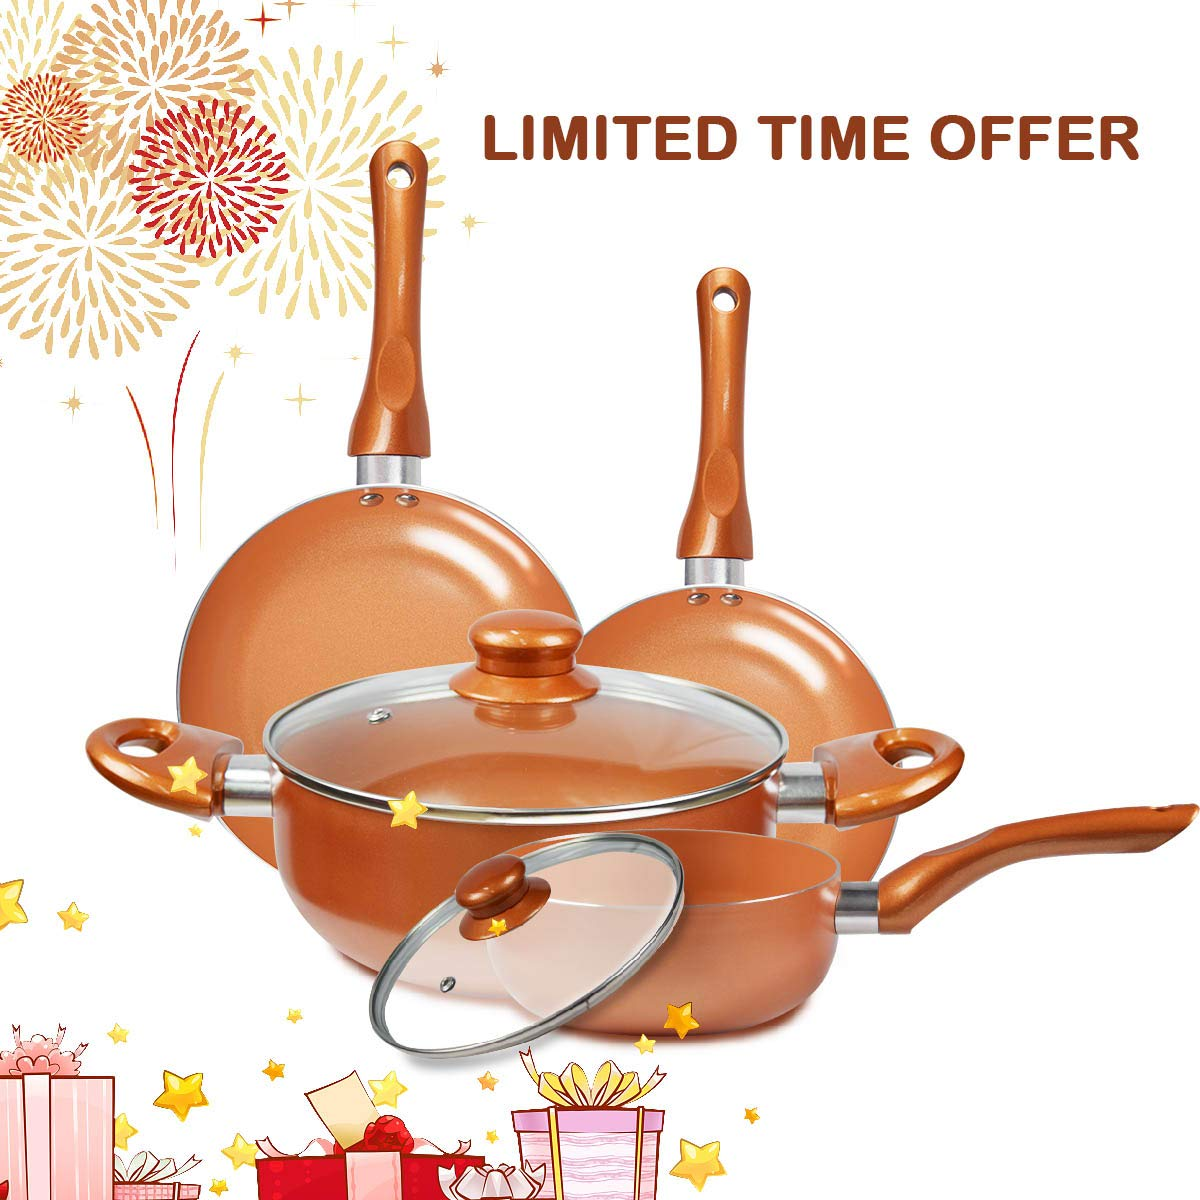 FRUITEAM 6pcs Cookware Set | Ceramic Nonstick Soup Pot, Milk Pot and Frying Pans Set | Copper Aluminum Pan with Lid | Induction Gas Compatible, 1 Year Warranty Mothers Day Gifts for Wife